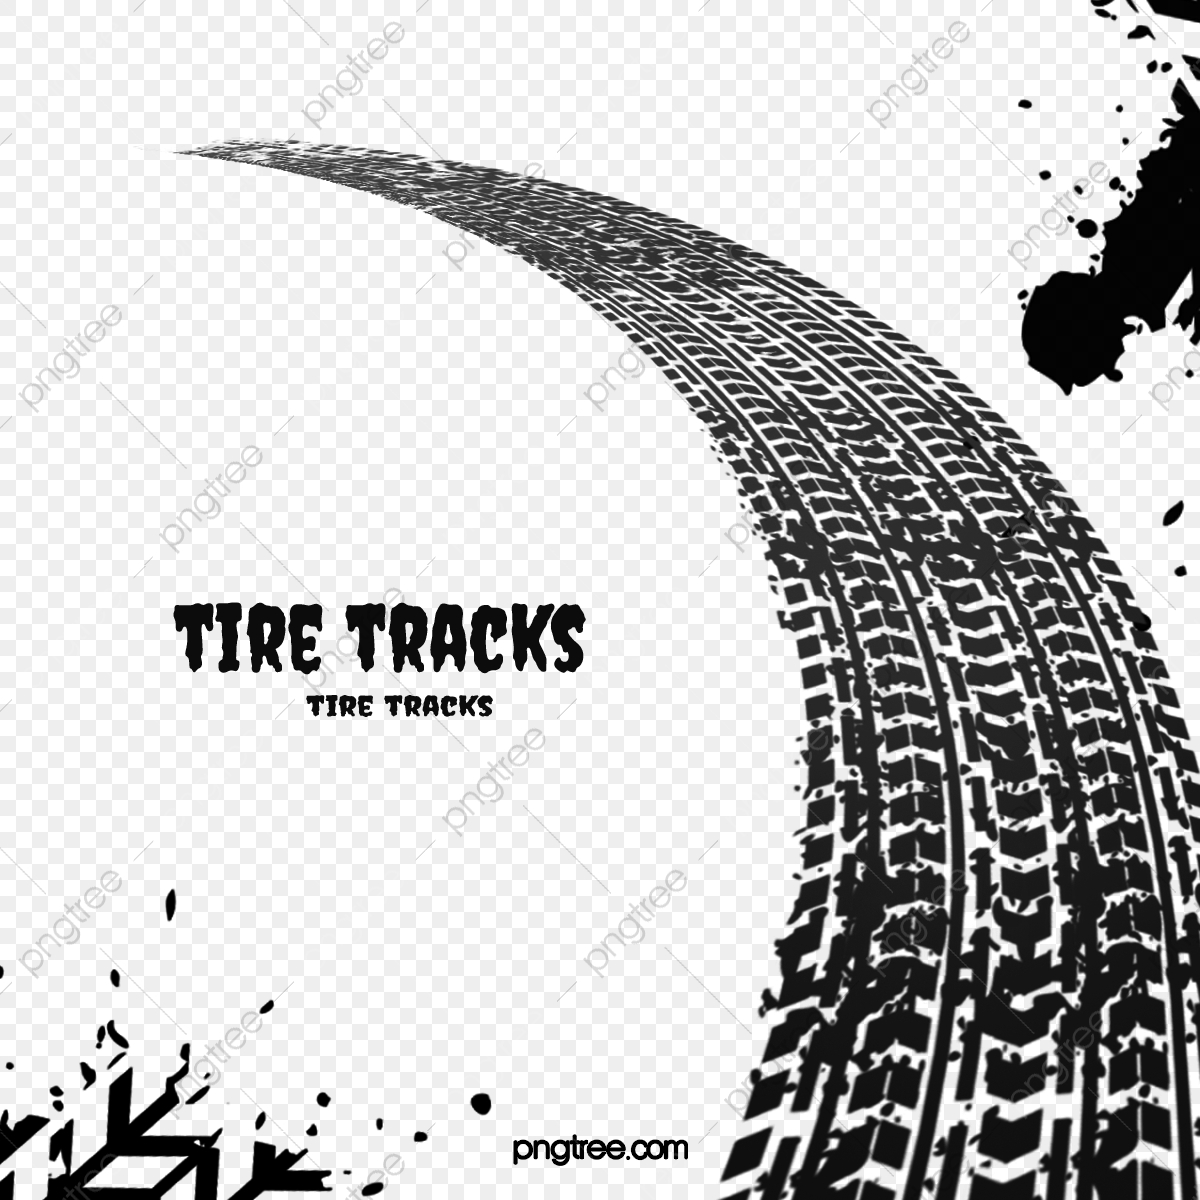 Tire Tracks Png Images Vector And Psd Files Free Download On Pngtree